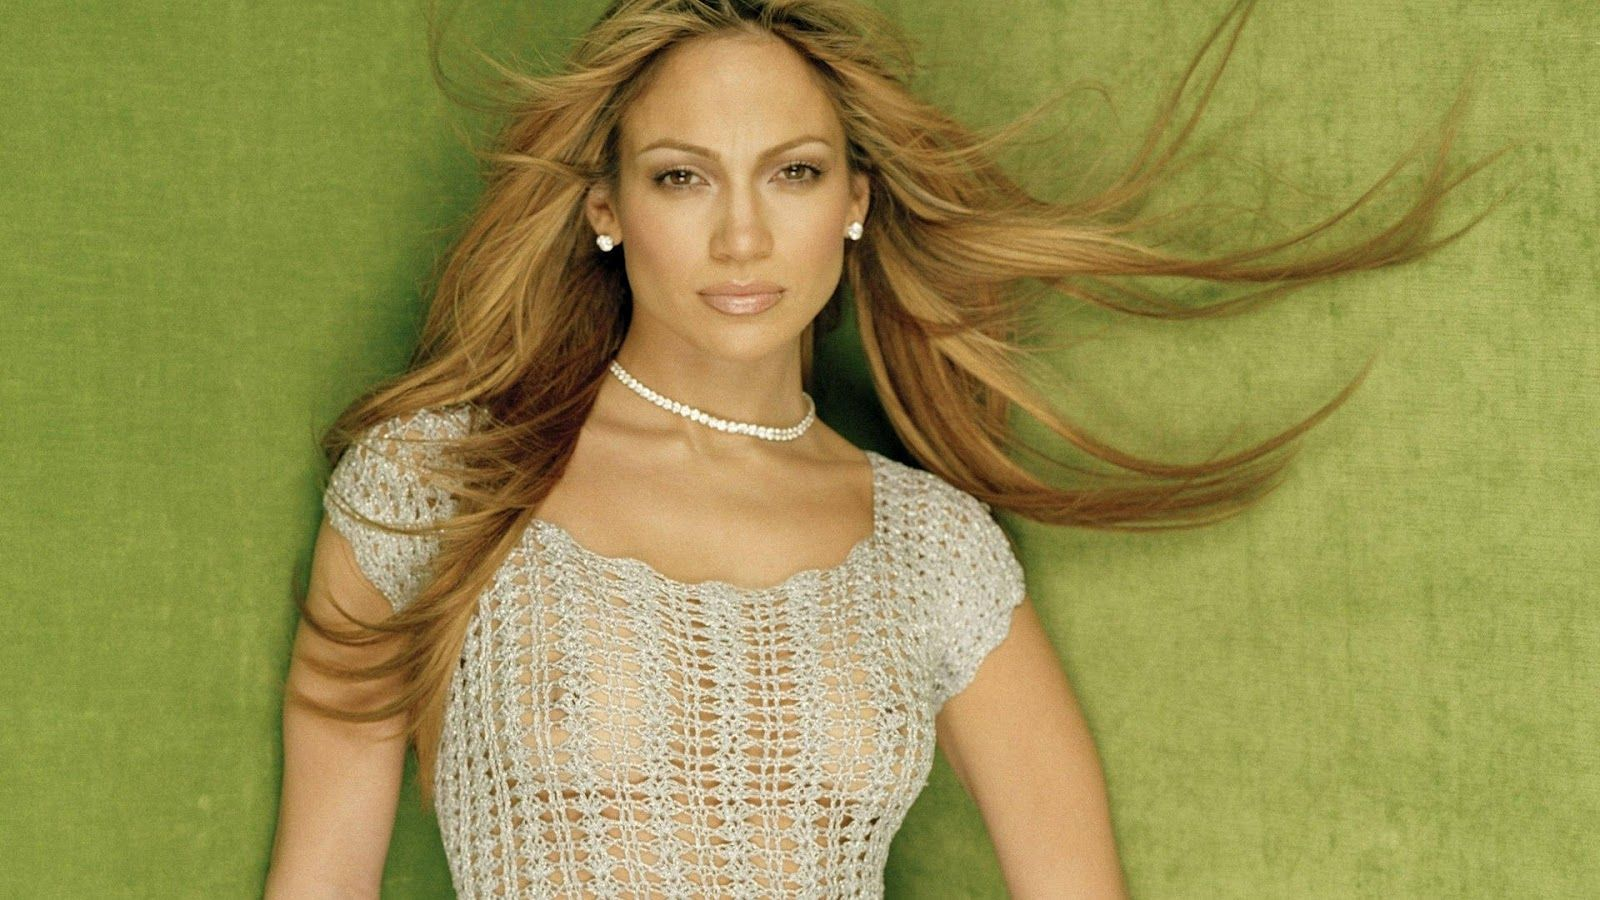 jennifer lopez wallpapers pictures images | hd wallpapers